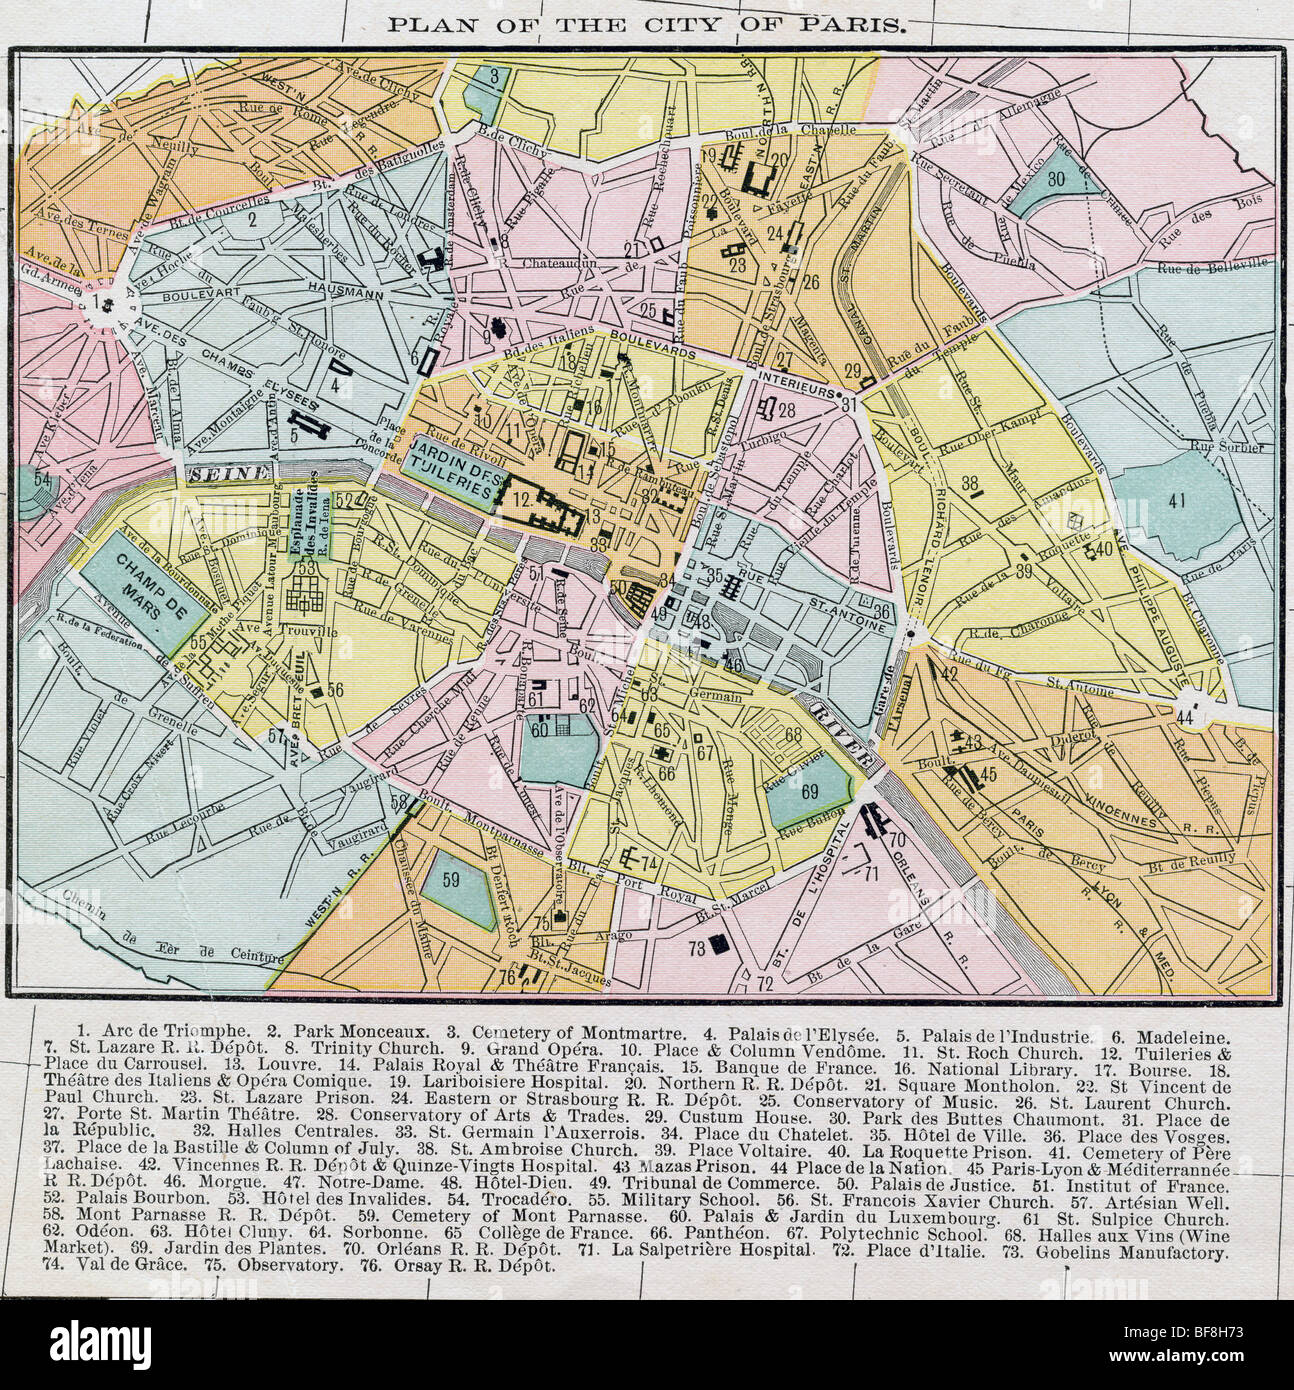 Original old map of paris from 1884 geography textbook stock photo original old map of paris from 1884 geography textbook gumiabroncs Gallery